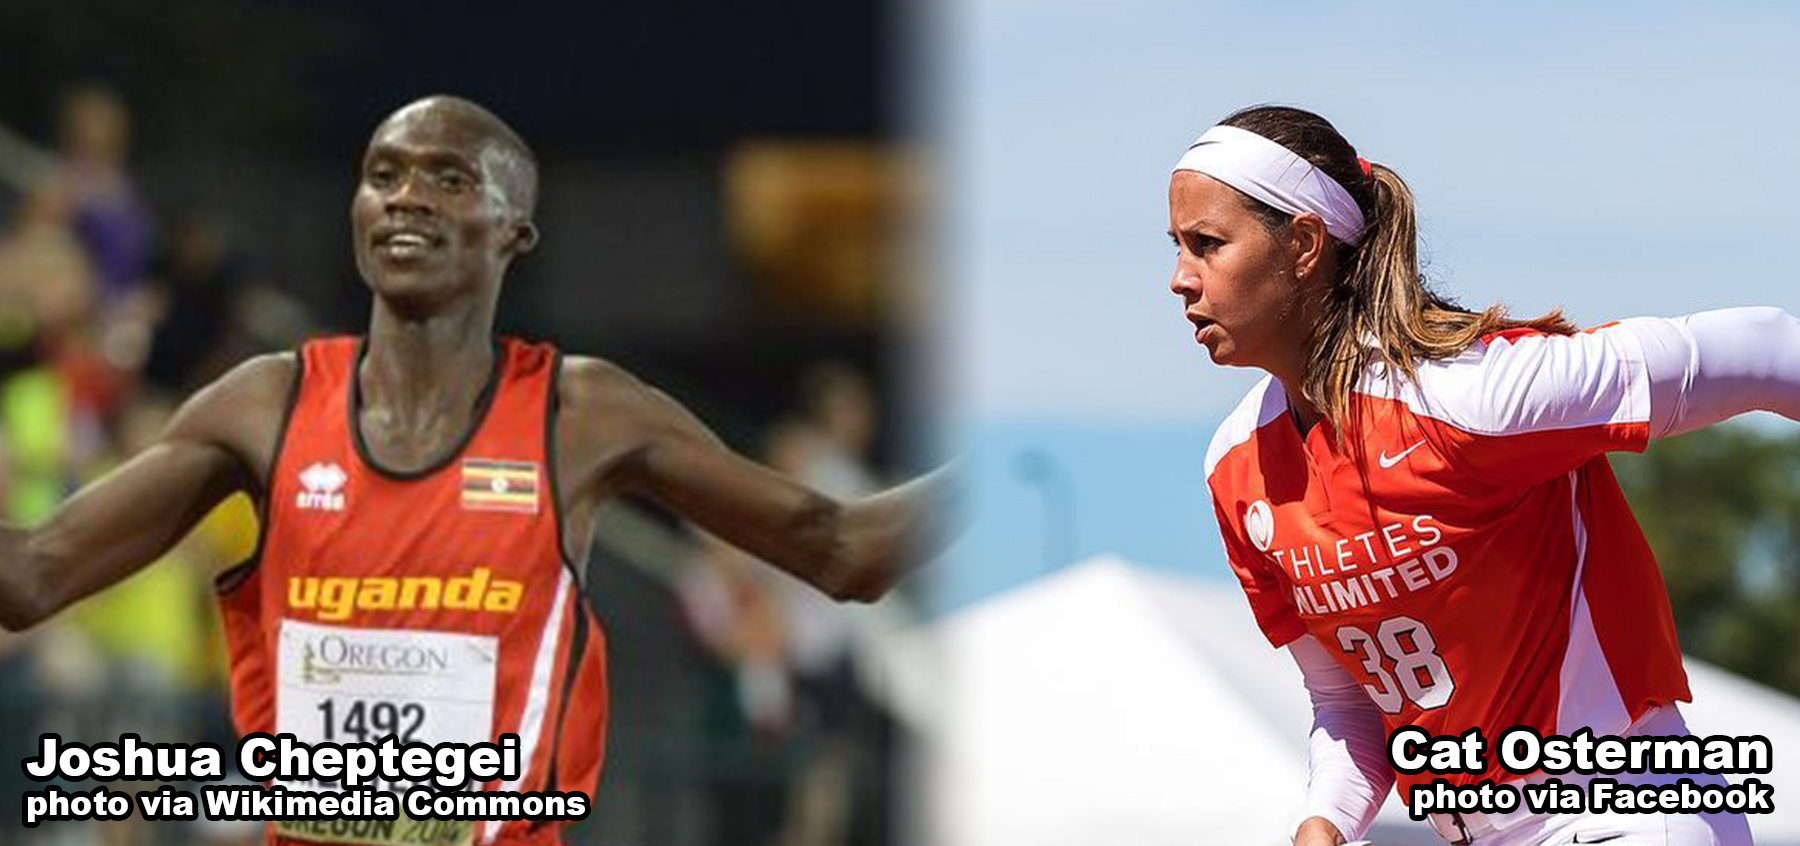 Joshua Cheptegei and Cat Osterman